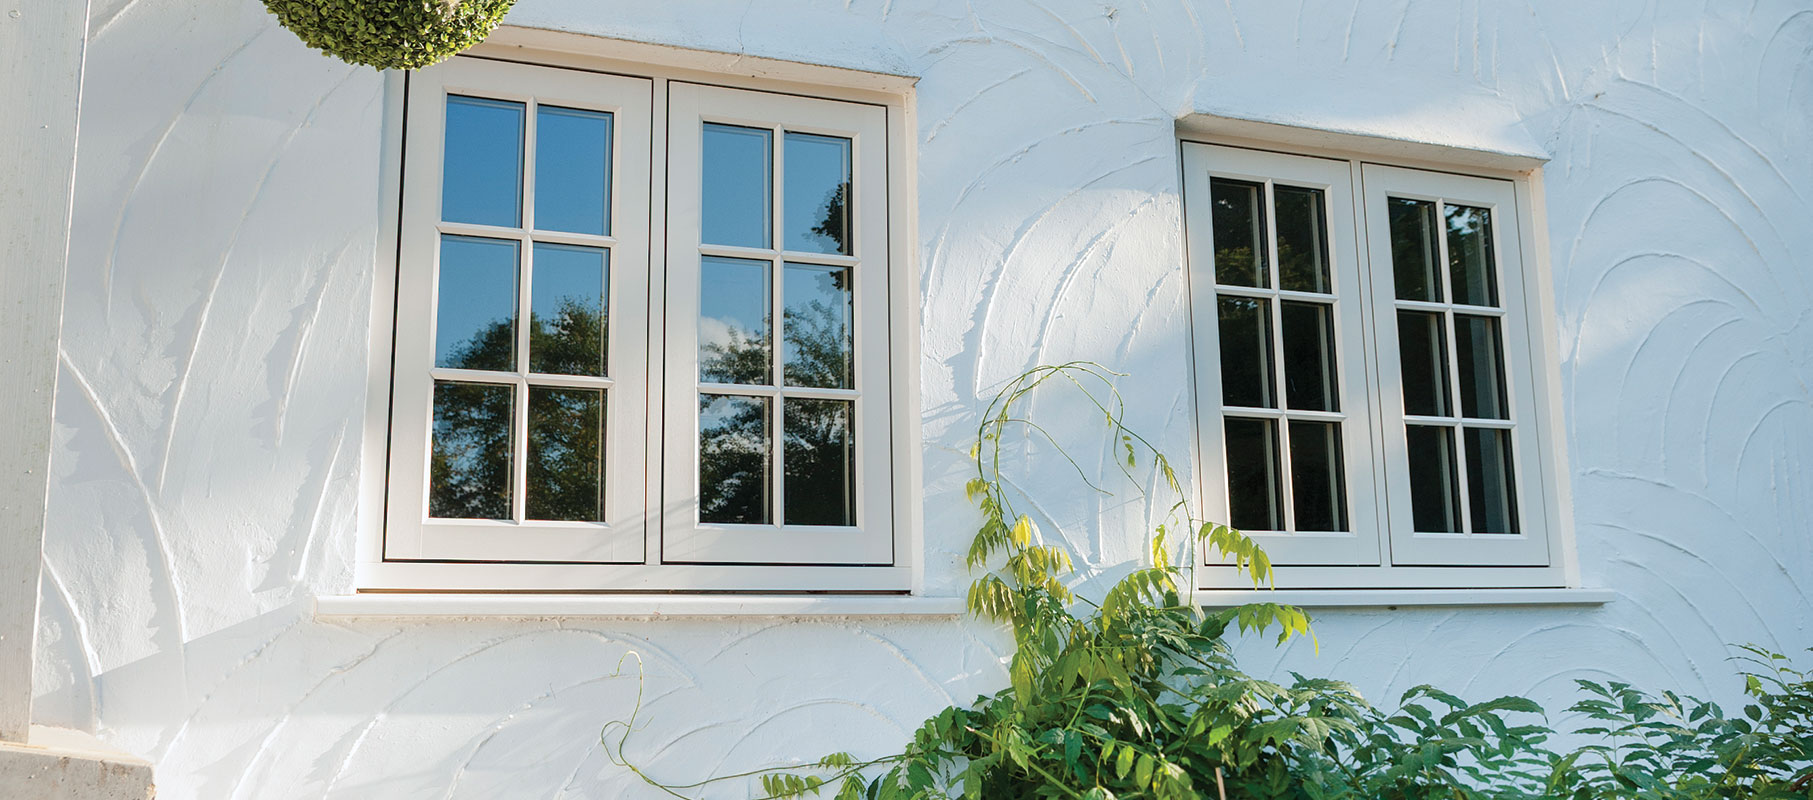 pictures of windows house if you really want to improve the uvalue thermal efficiency another level on windows or maybe reduces noise from any busy roads wide range of available in gloucestershire